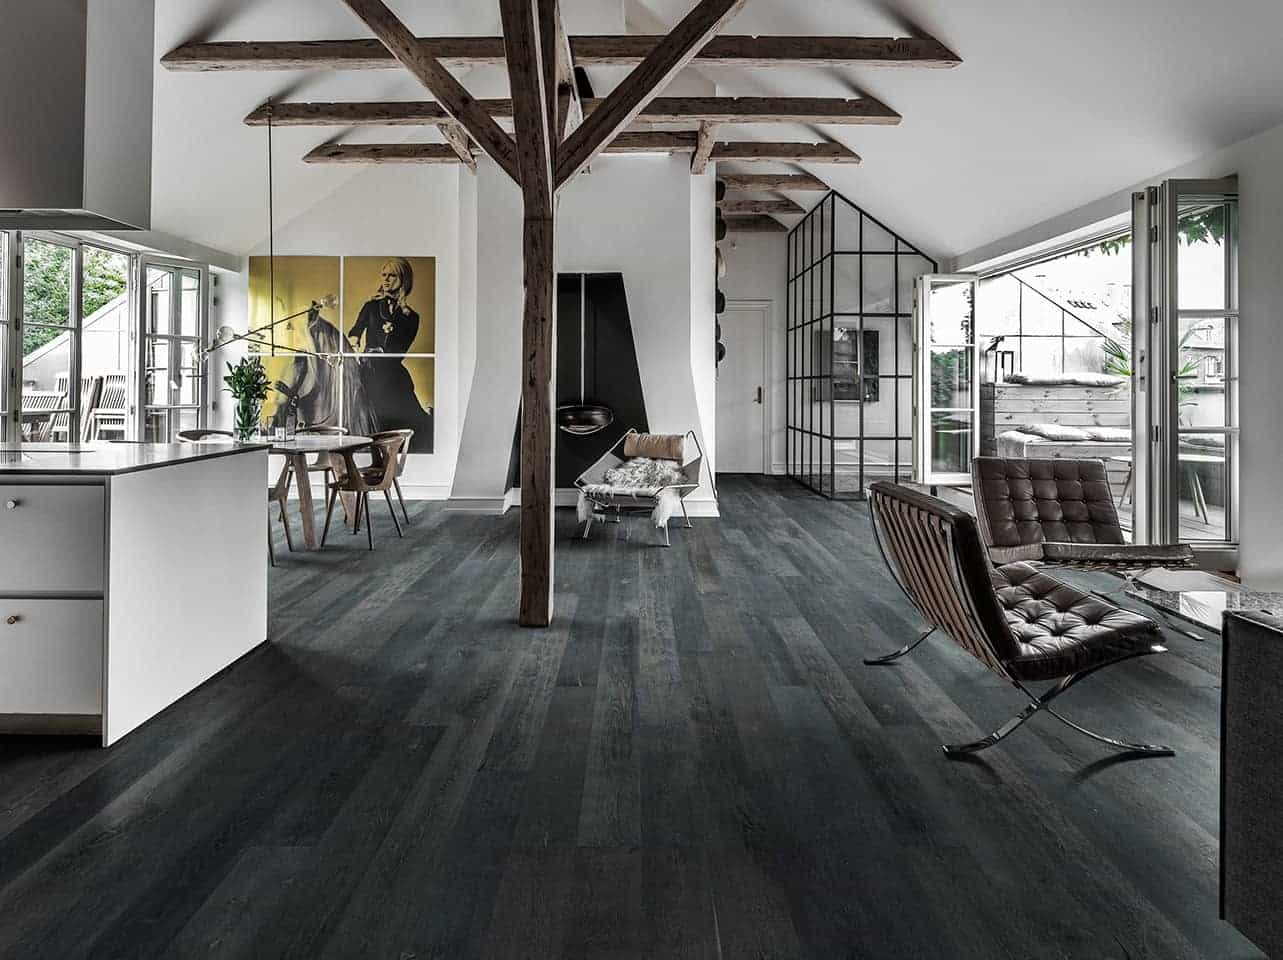 Welcome to Hallmark Floors! The True Mark of Quality in flooring. Leading in hardwood and waterproof flooring innovation, fashion and design for over ten years.